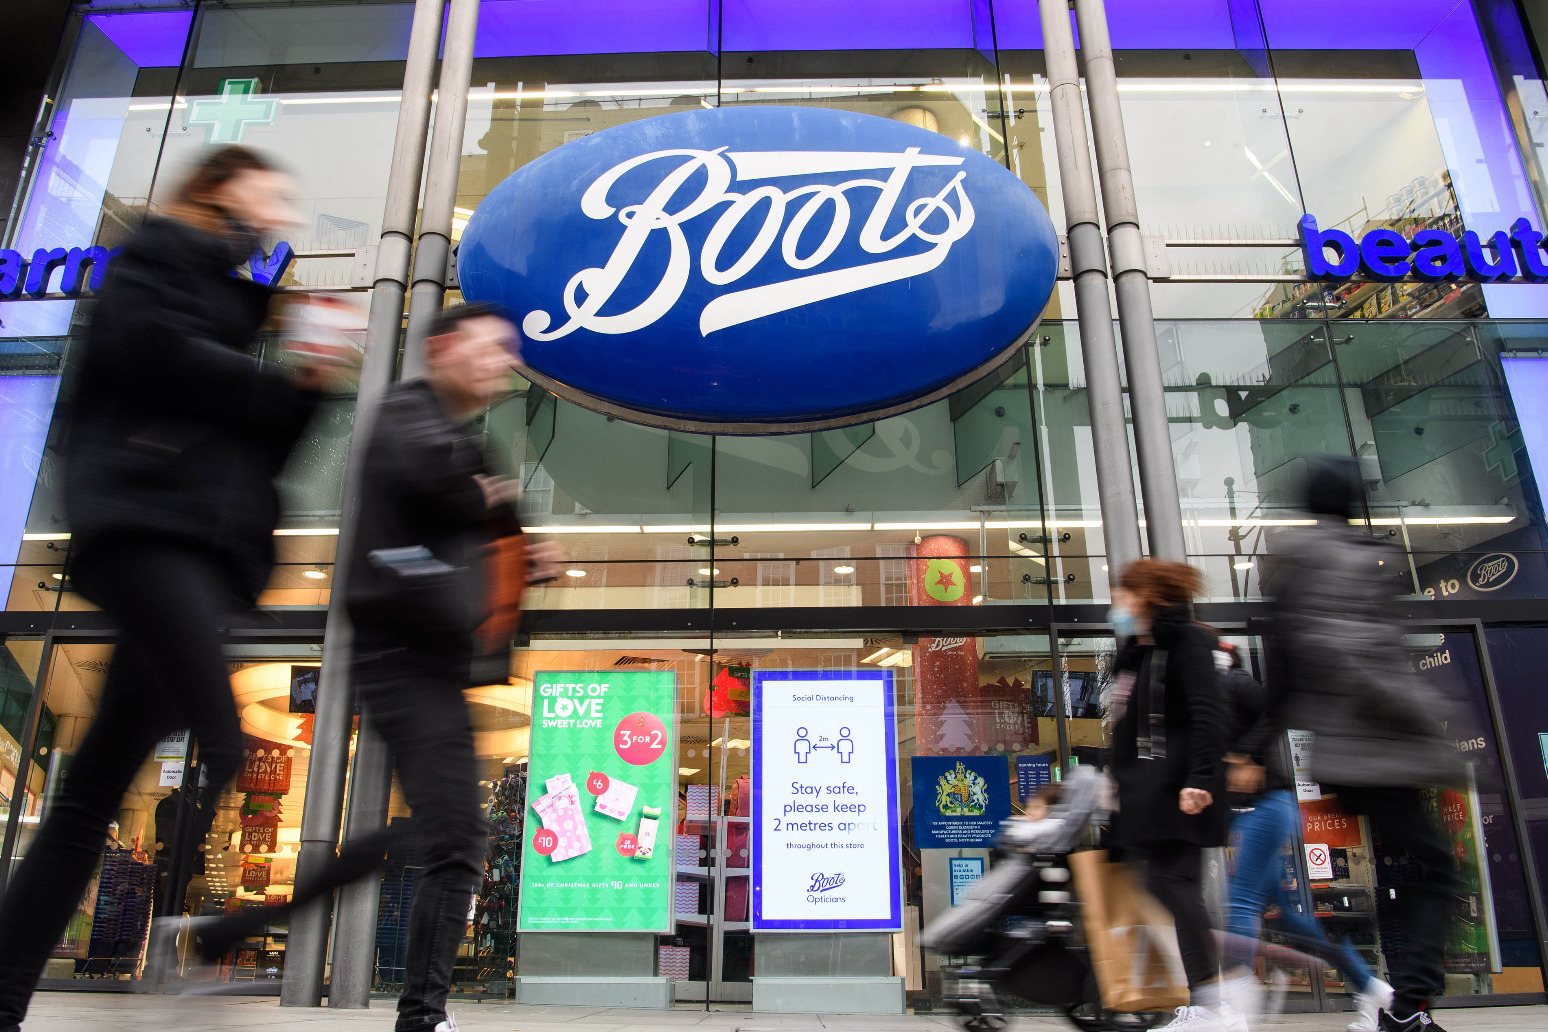 Boots sales rebound after lockdown restrictions eased